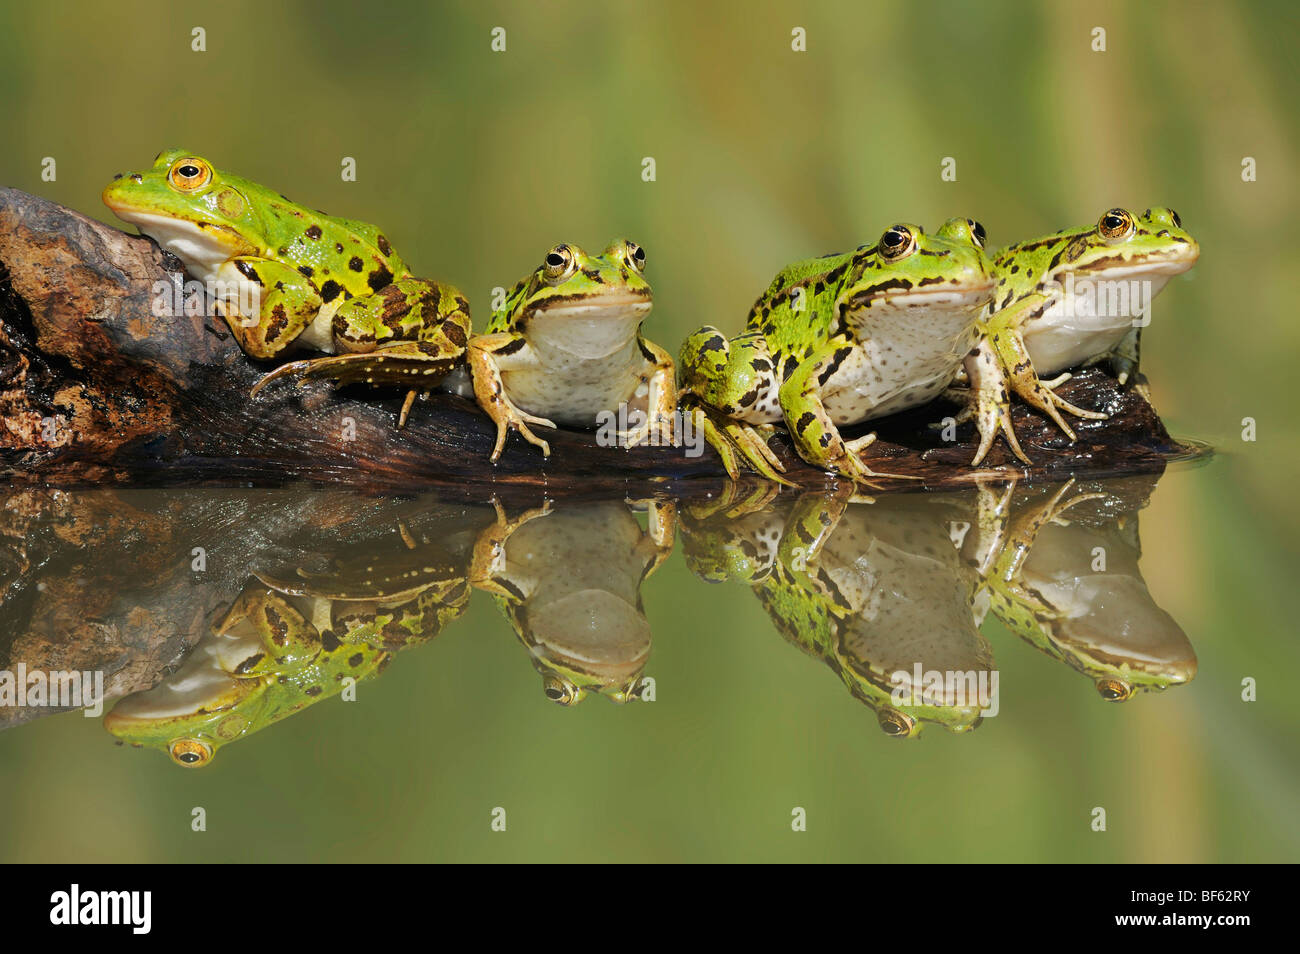 Edible Frog (Rana esculenta), adults on log, Switzerland, Europe - Stock Image